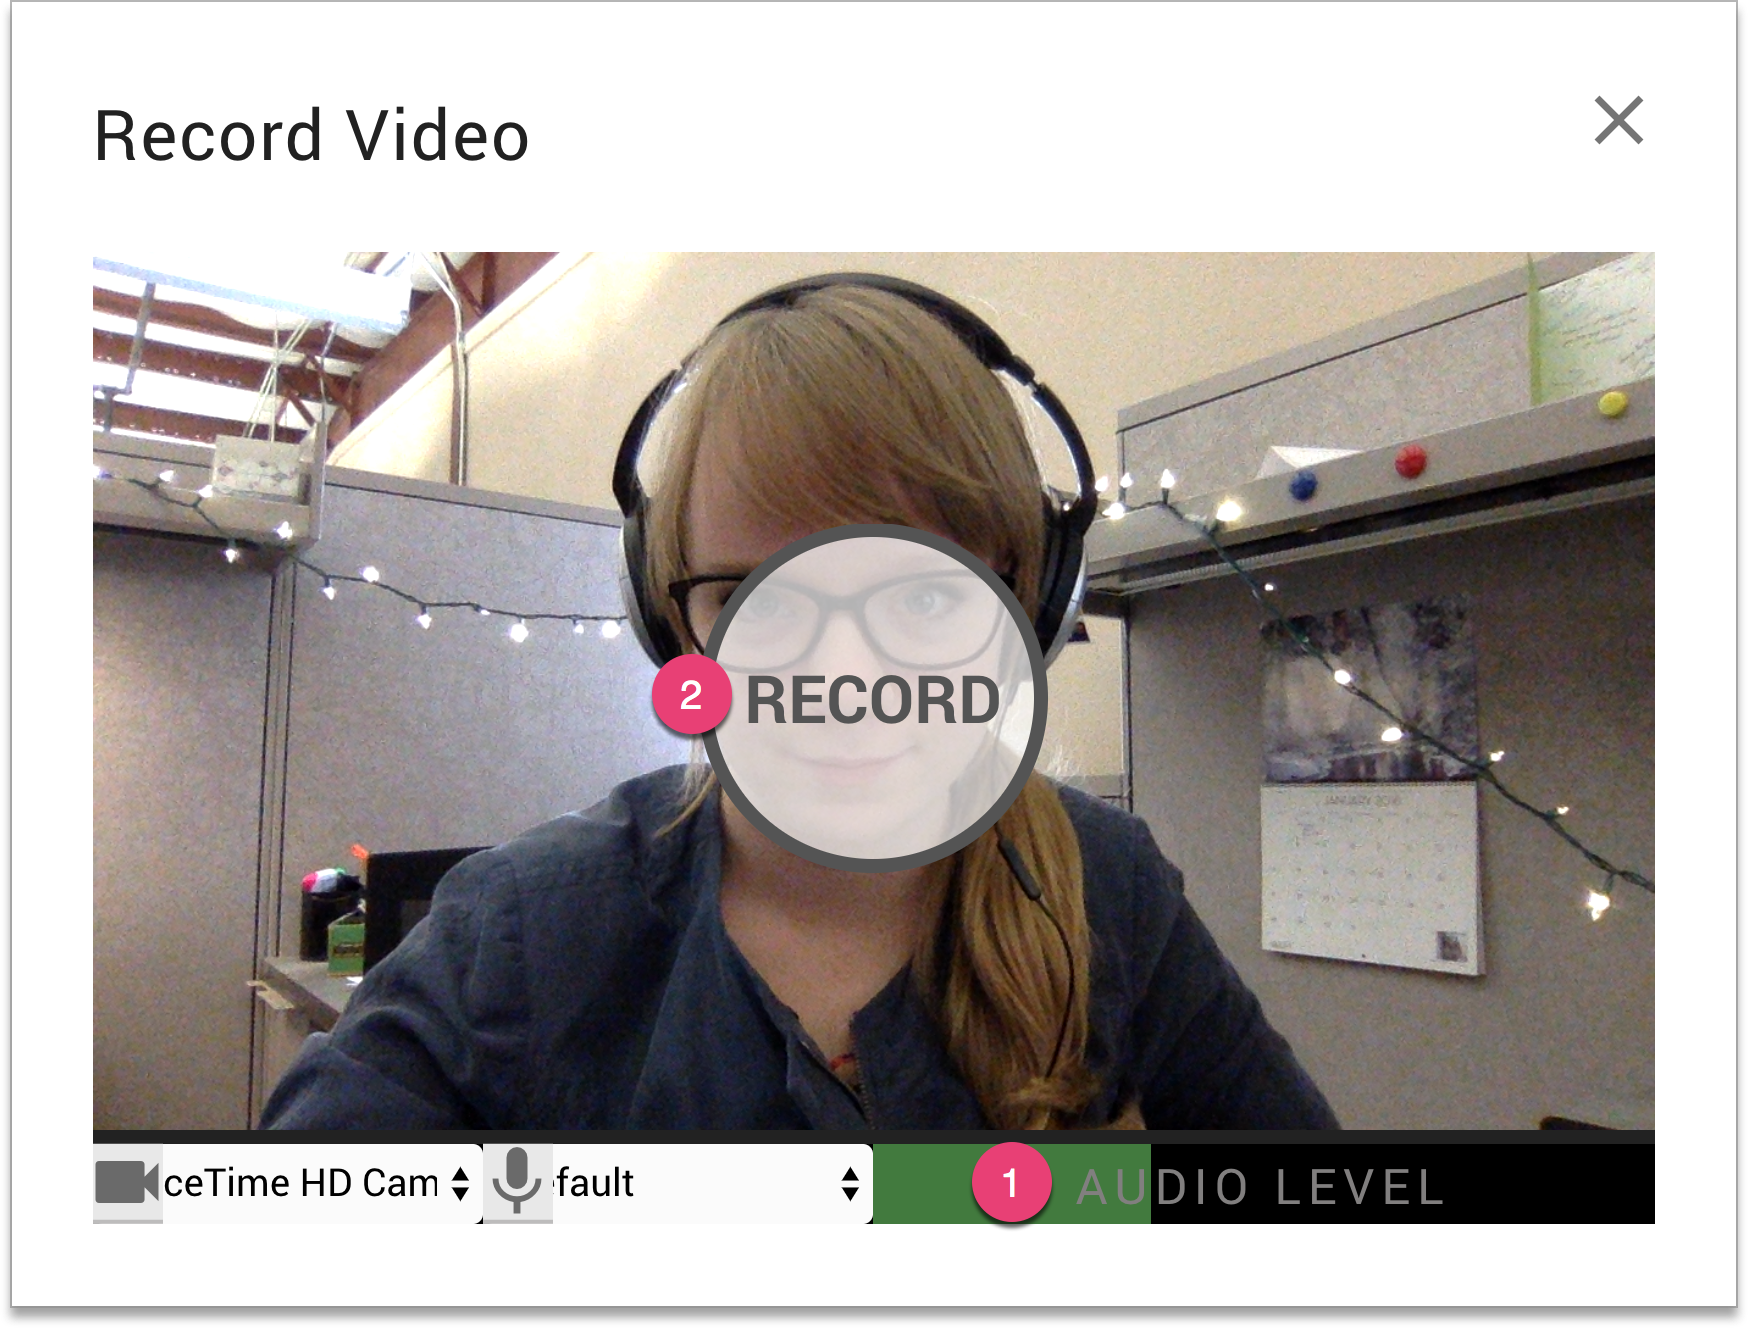 Record_Video.png